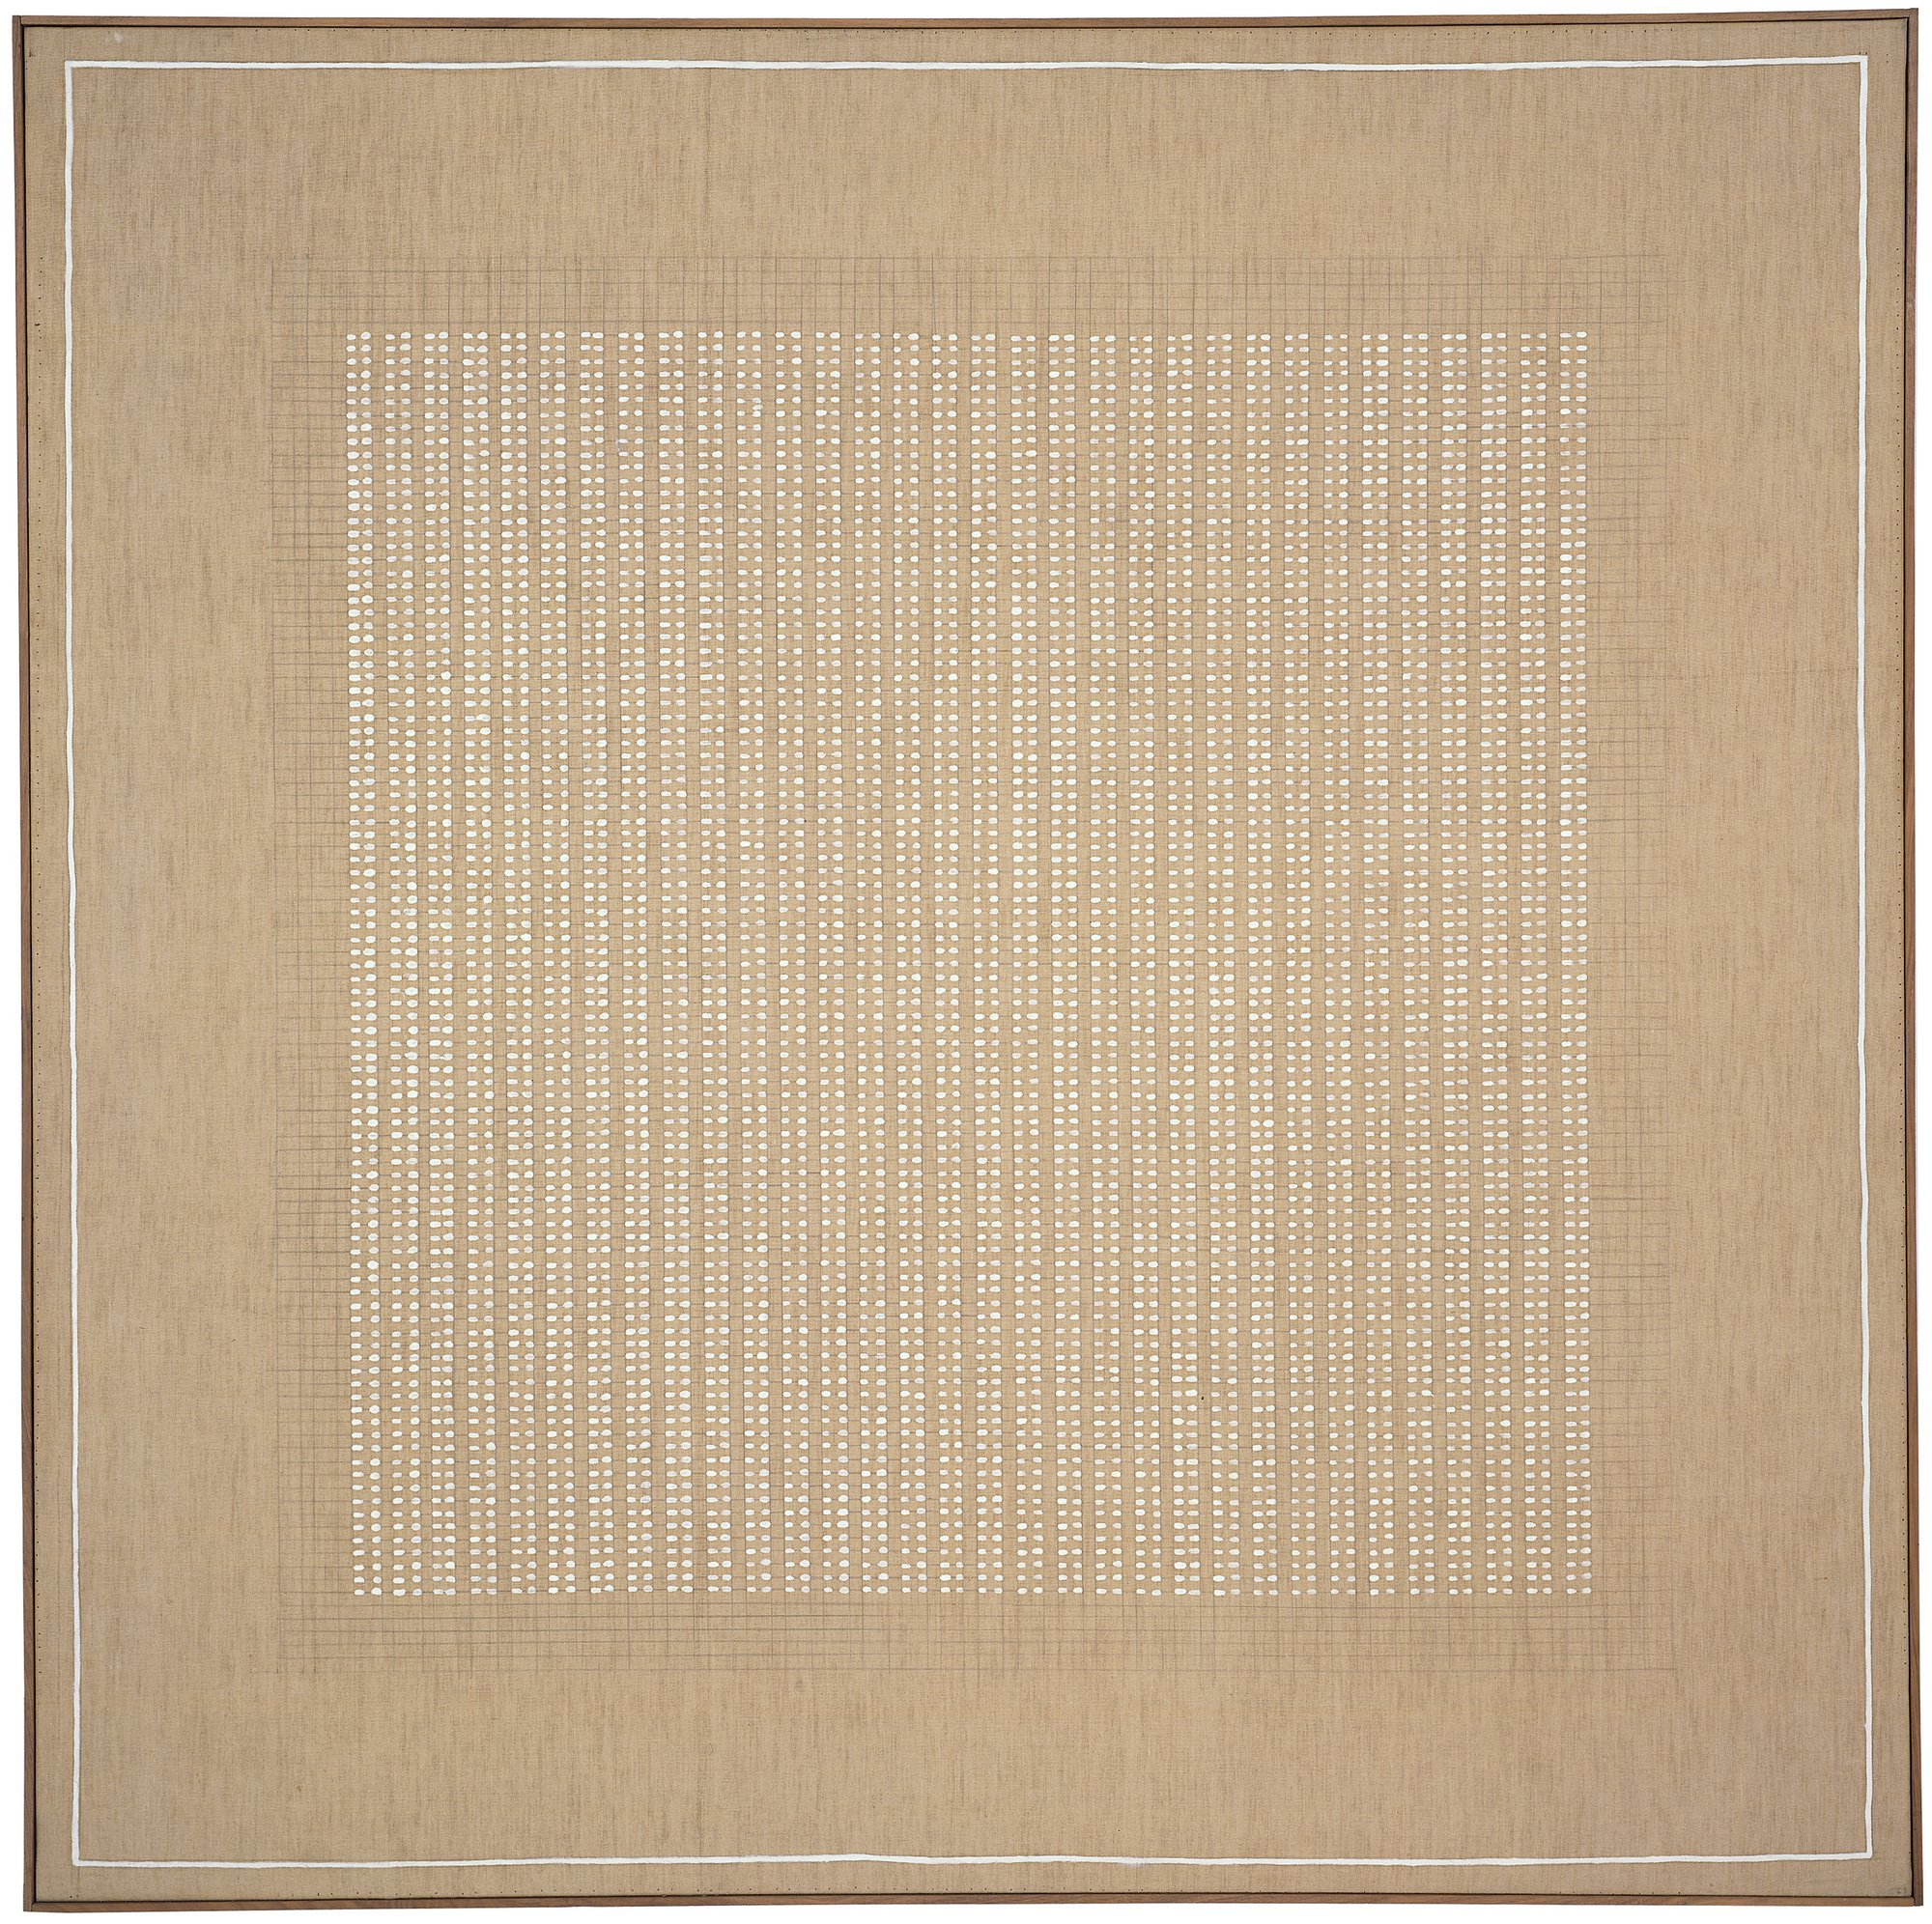 Agnes Martin | Pace Gallery